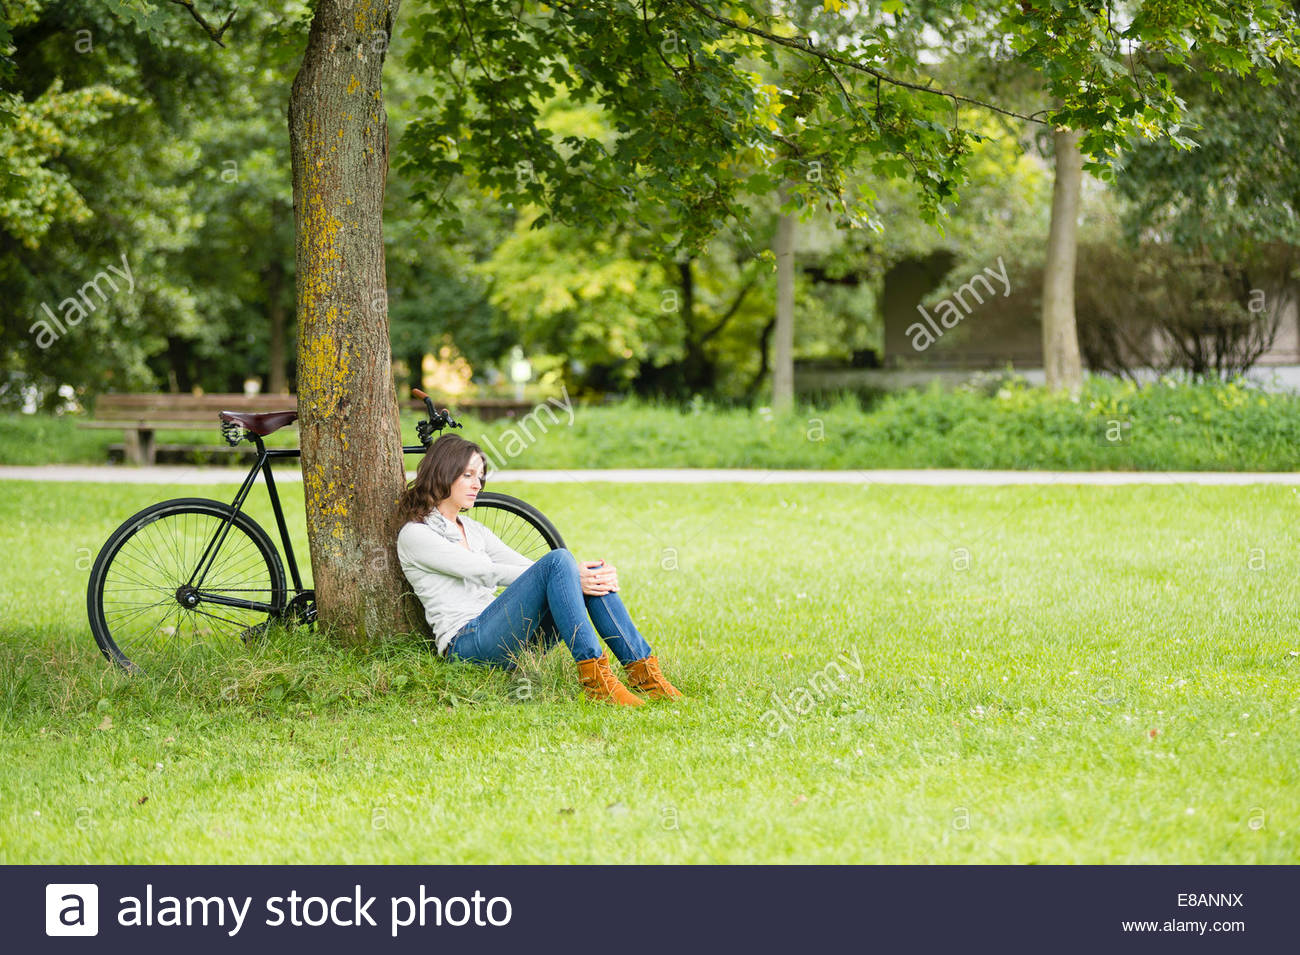 Mid adult woman cyclist sitting against park tree - Stock Image